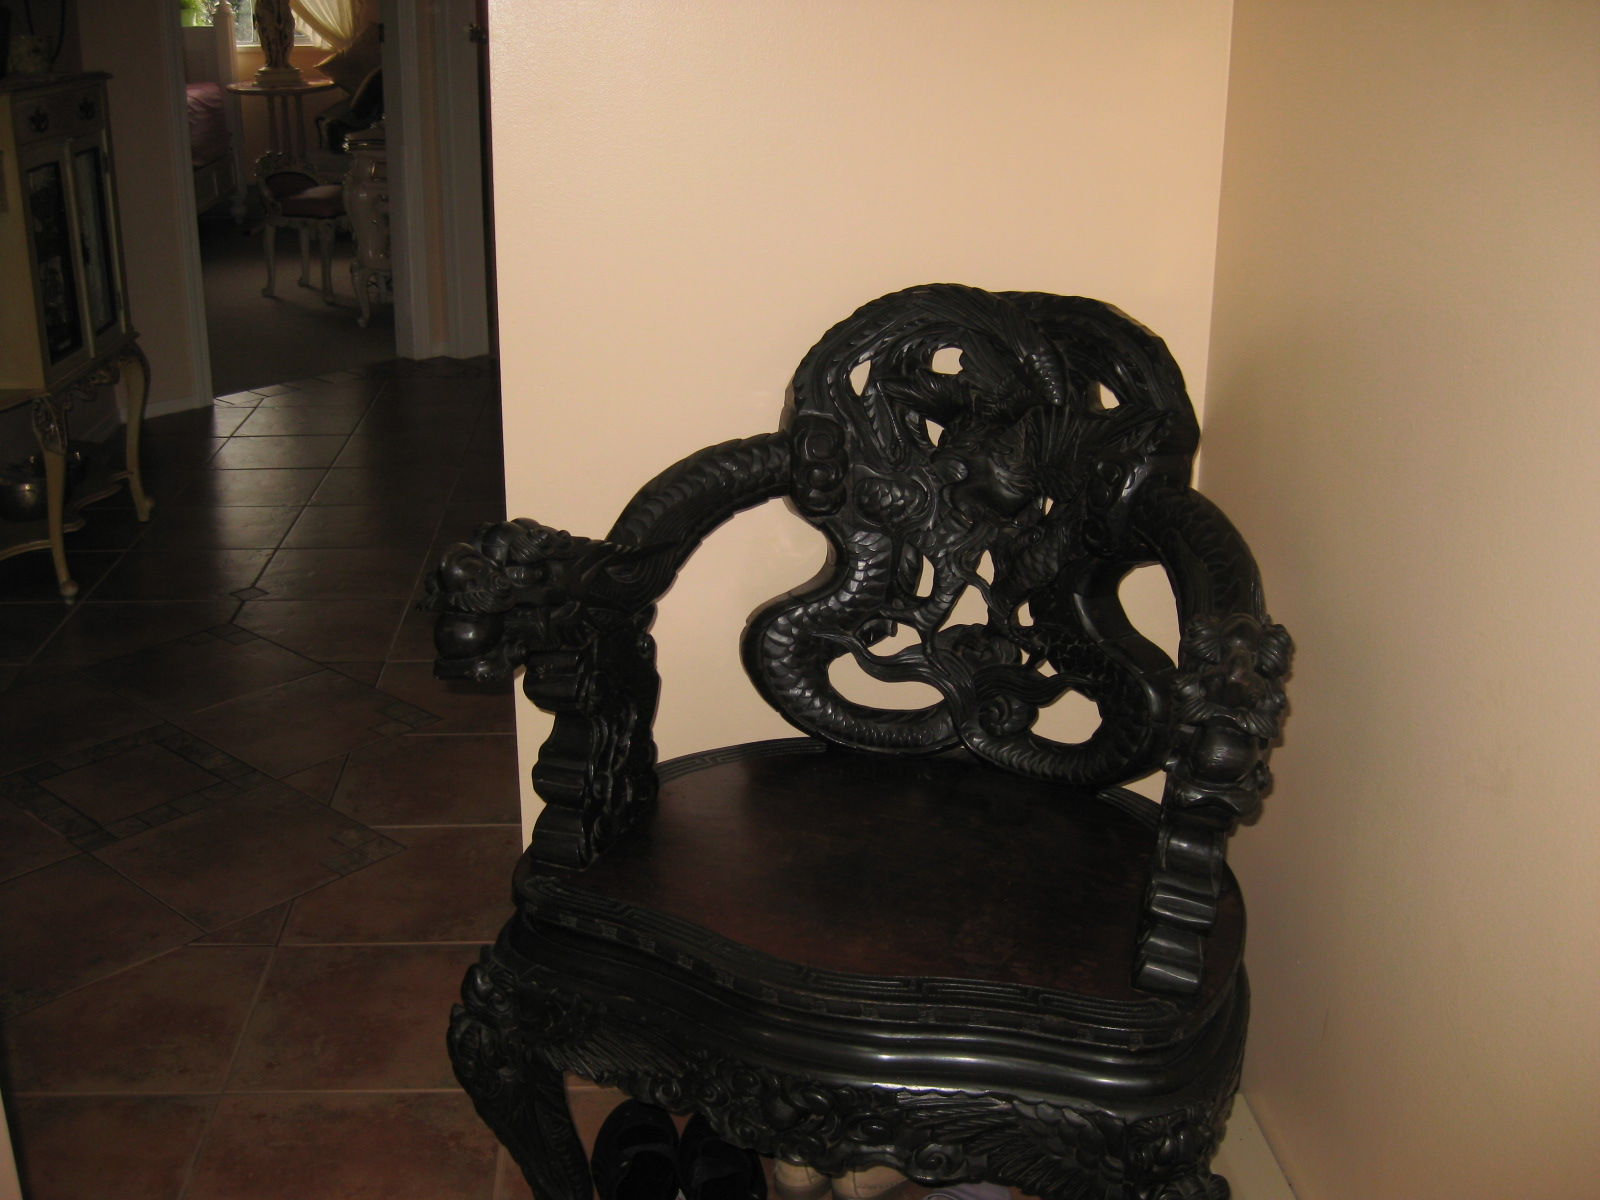 antique chinese dragon chair navy covers wedding appraisal instappraisal